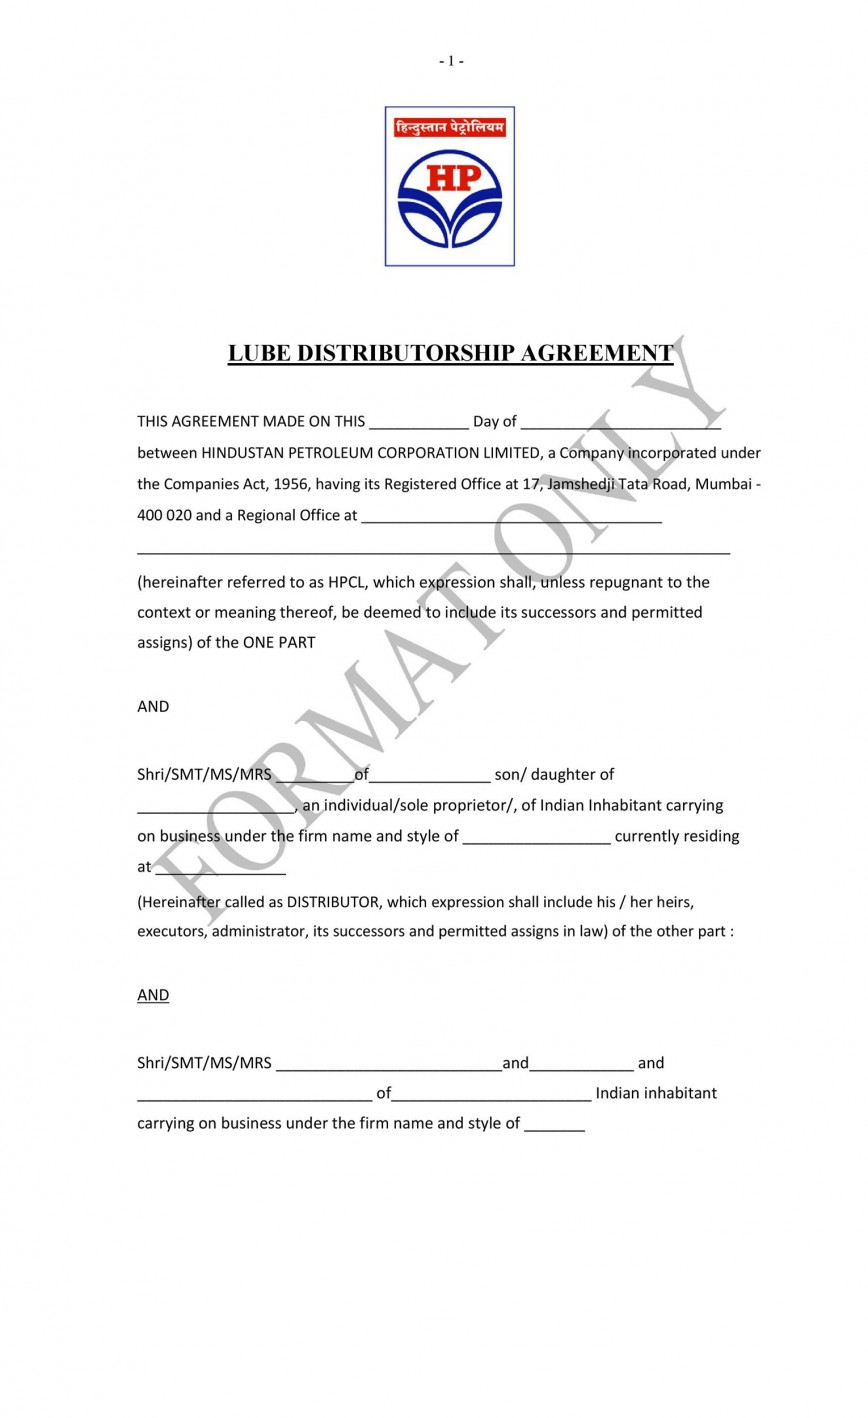 009 Awful Exclusive Distribution Agreement Template Free Download Inspiration 868